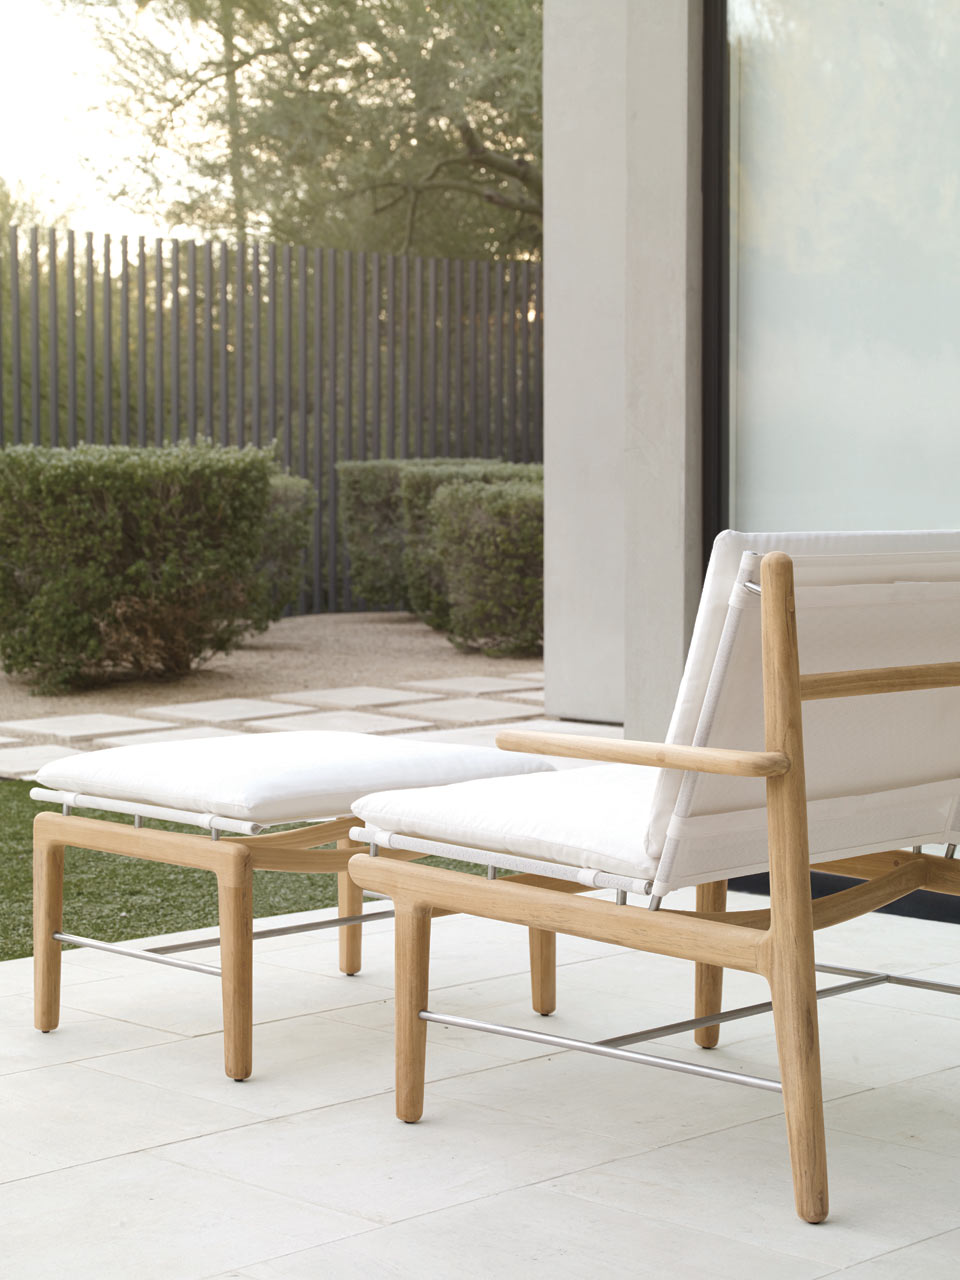 Finn-Outdoor-Norm-Architects-DWR-7